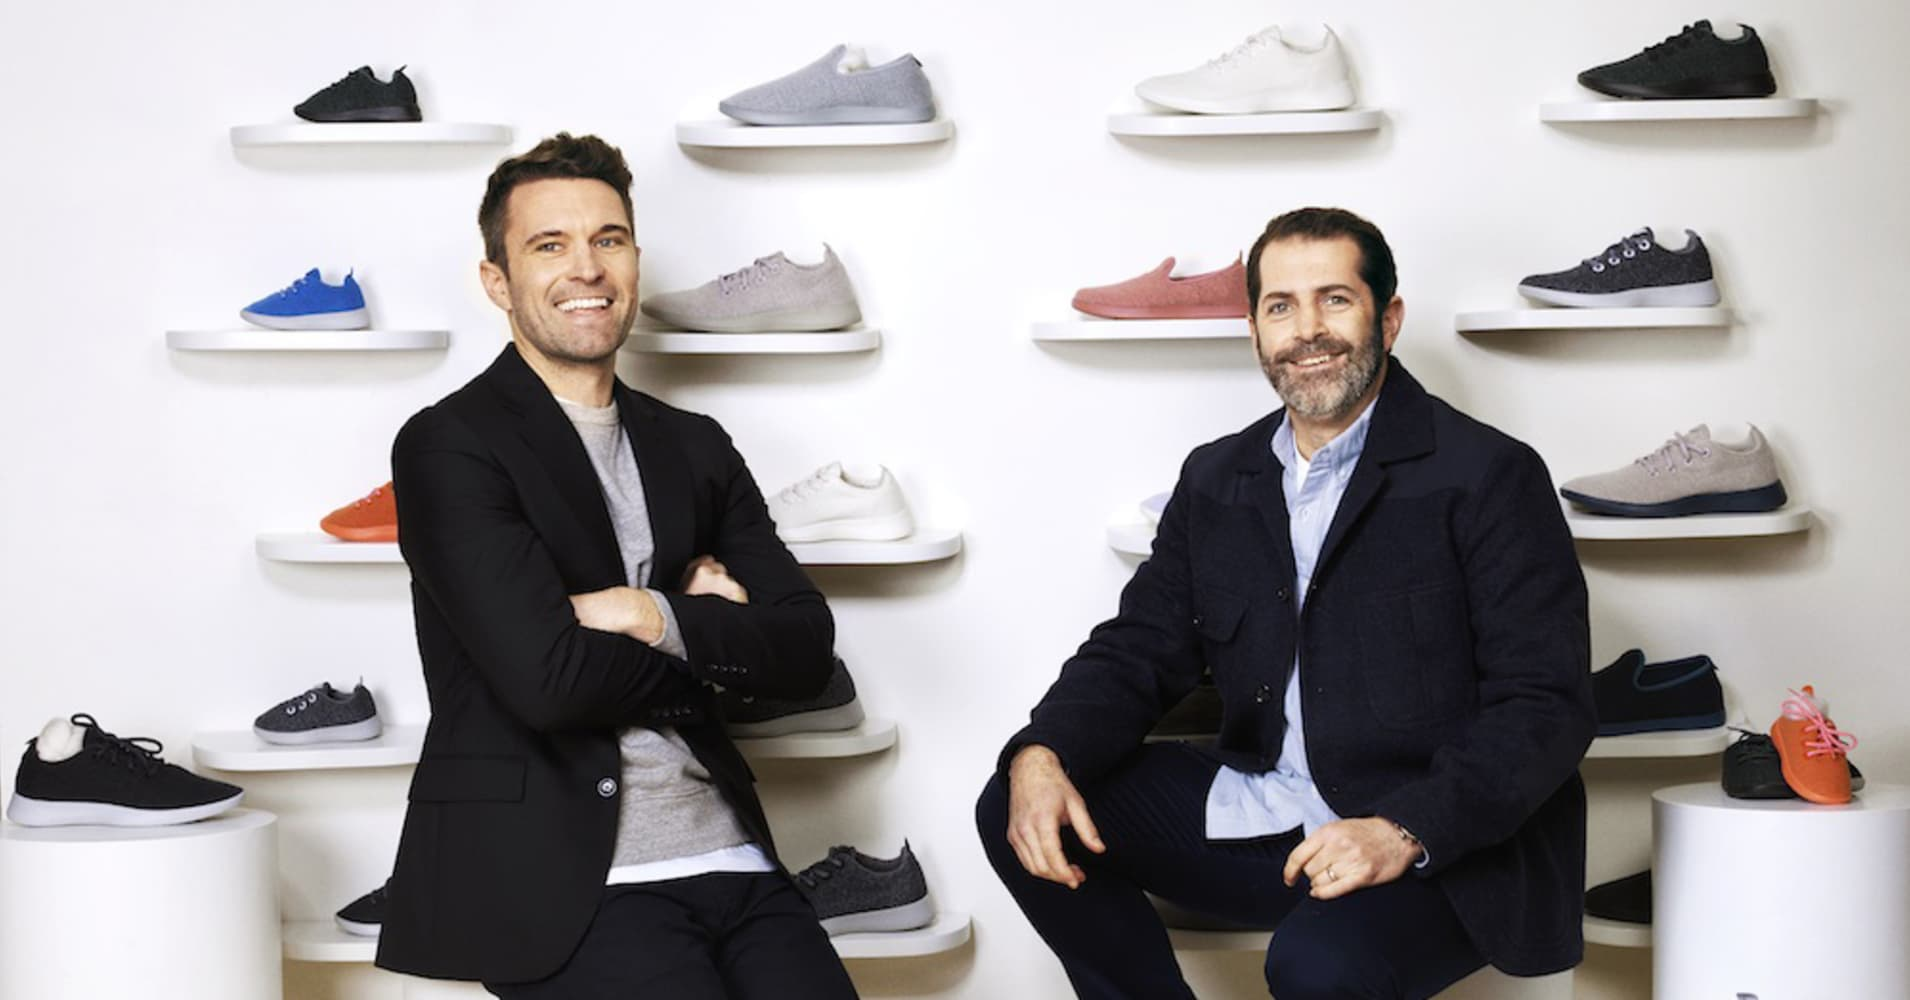 How Allbirds went from Silicon Valley fashion staple to a $1.4 billion sneaker start-up